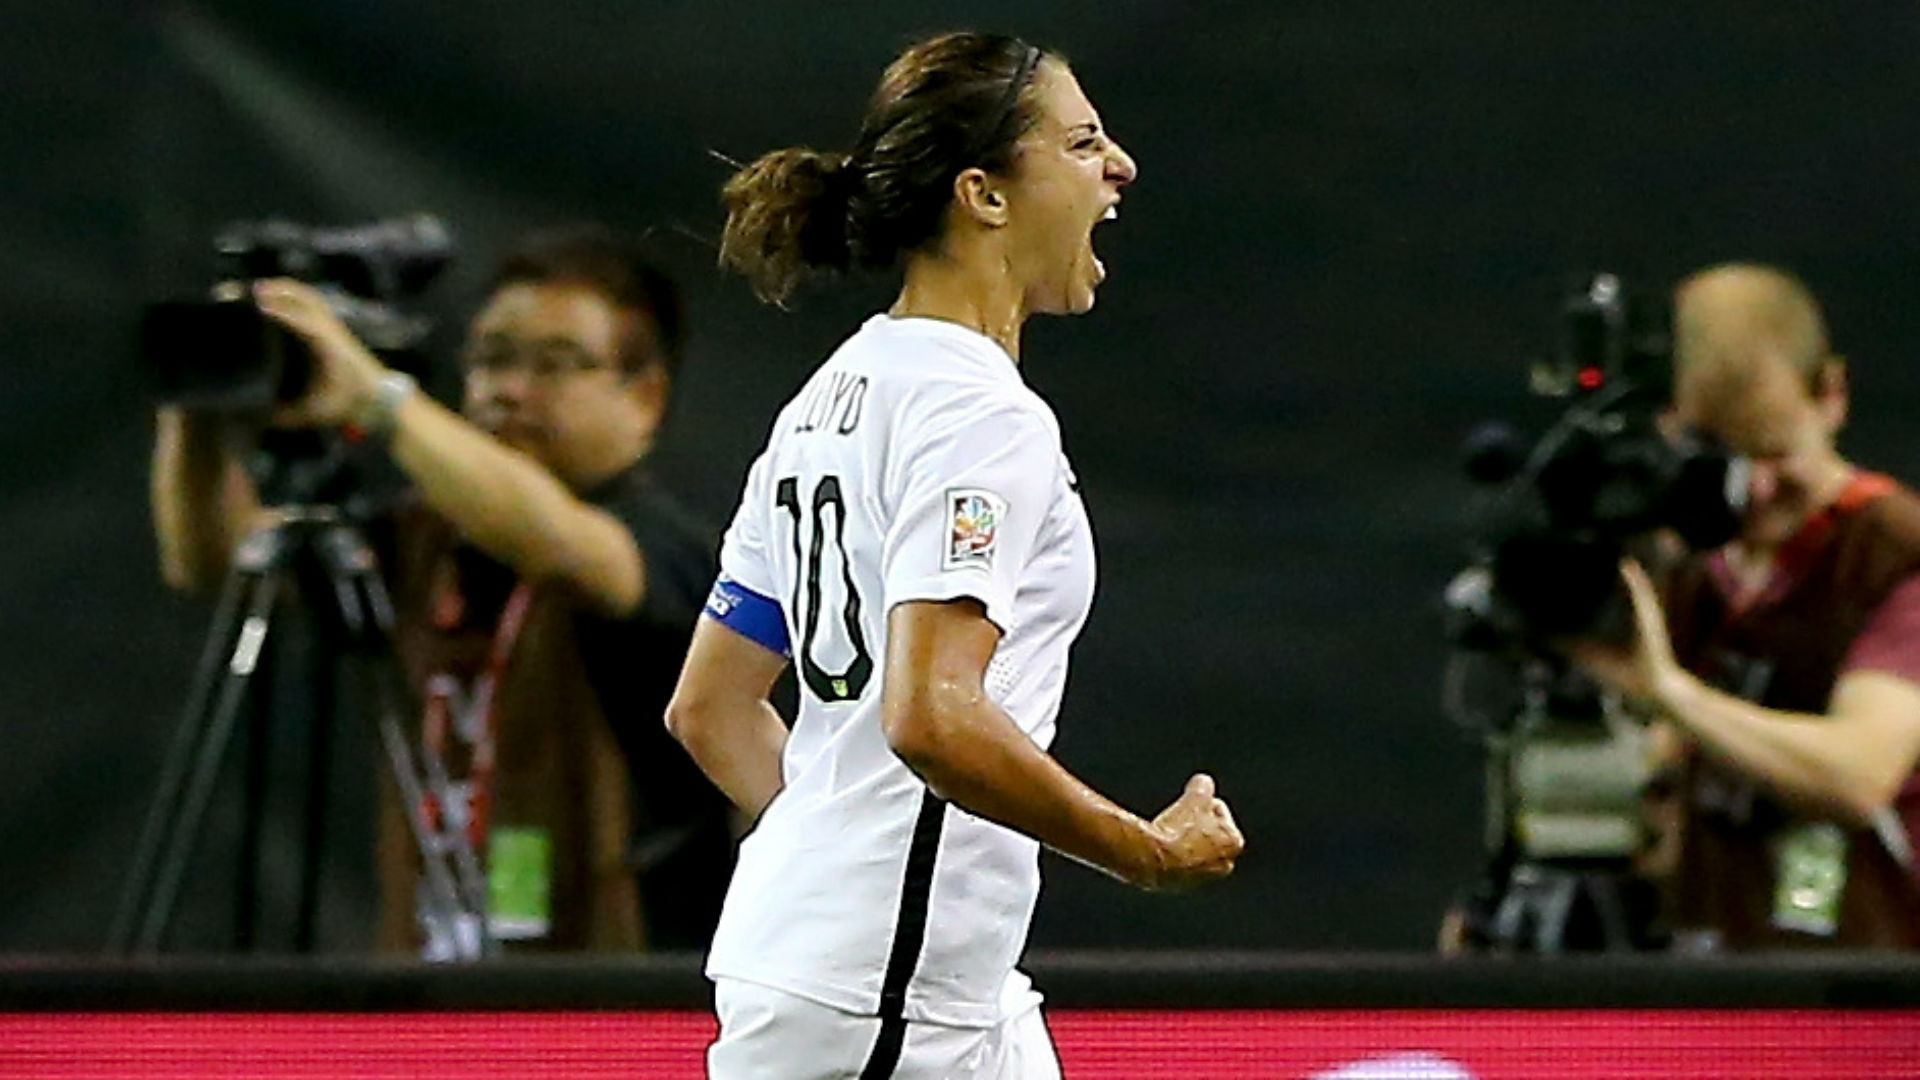 Women's World Cup final, USA vs. Japan: What you need to know